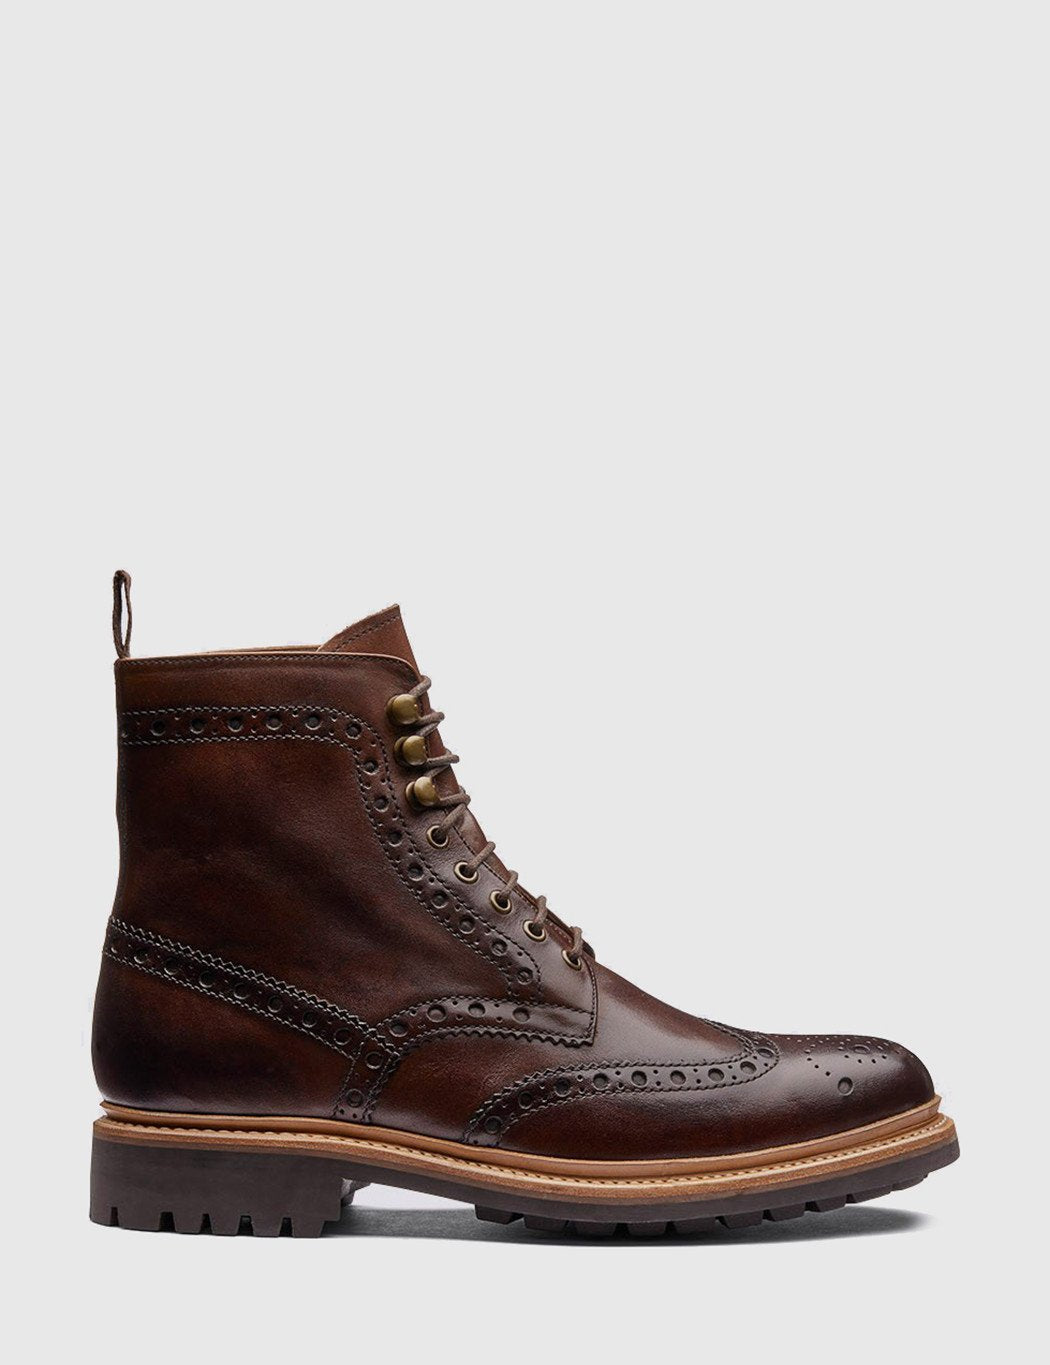 Grenson Fred Brogue Boot - Dark Brown